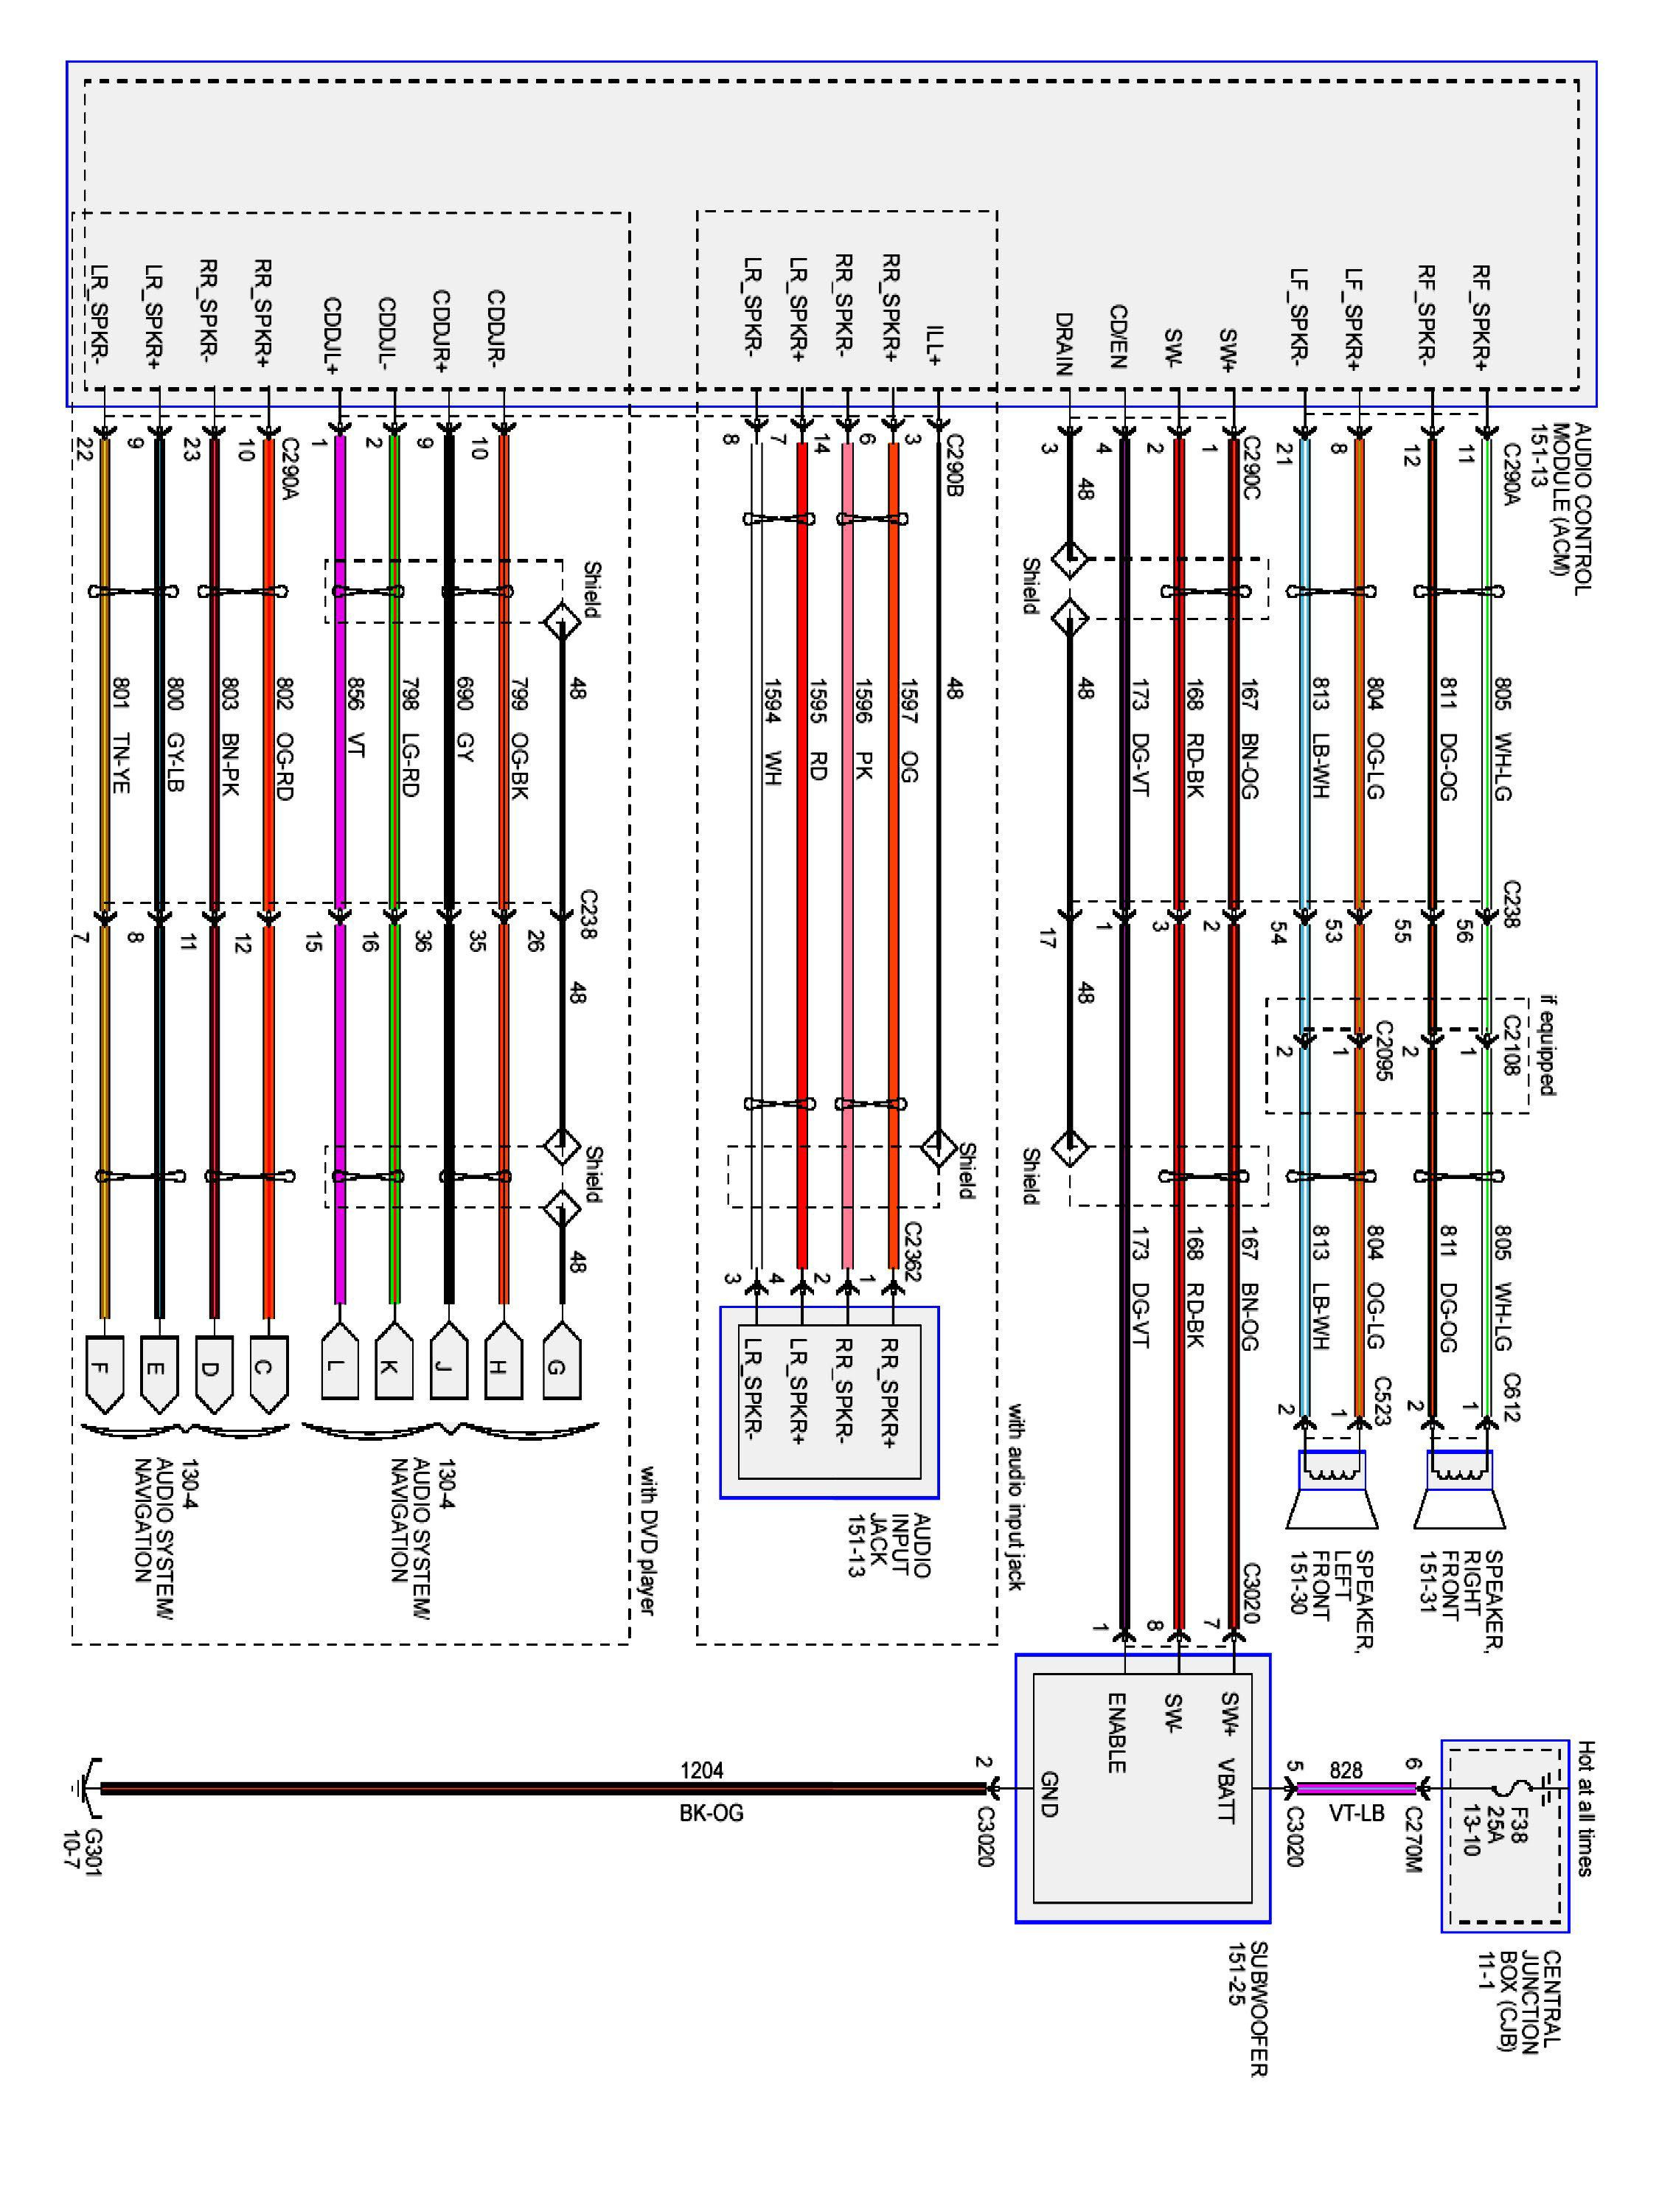 1998 ford expedition wiring diagram 1998 ford expedition ignition wiring diagram wiring diagram data  1998 ford expedition ignition wiring